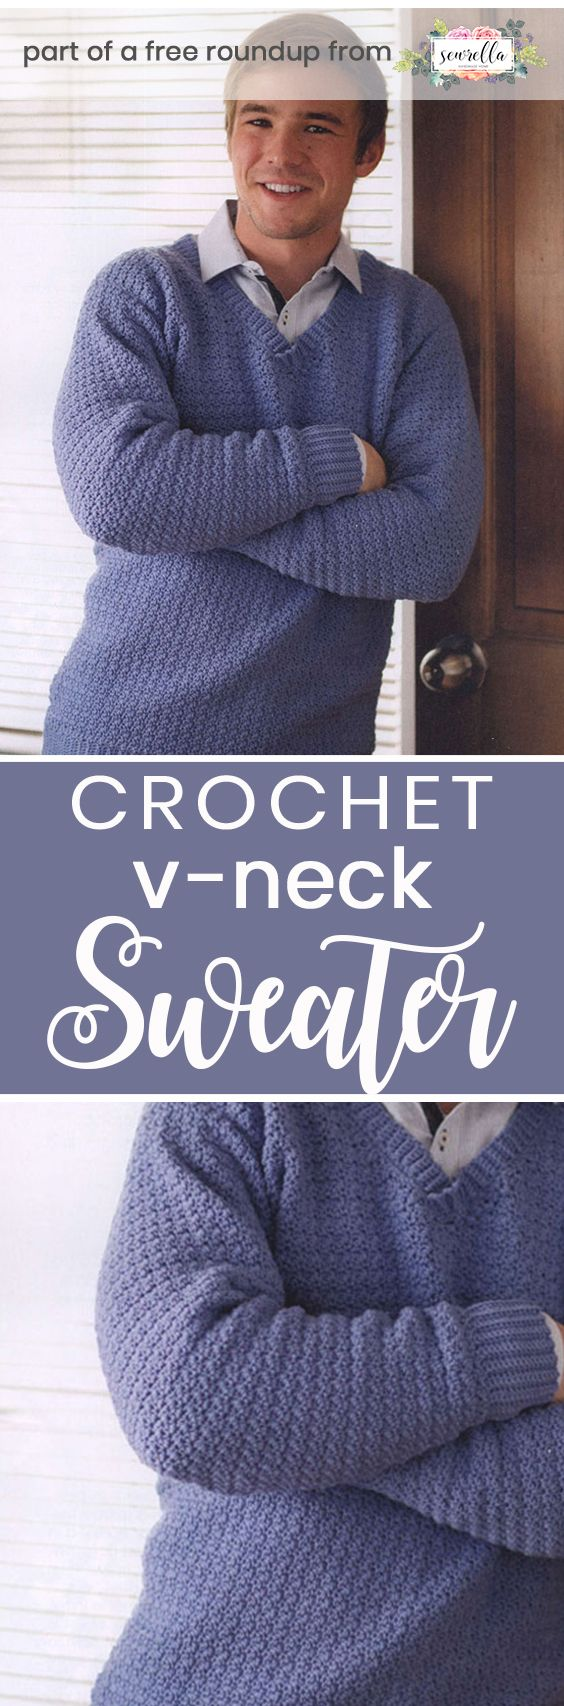 ecbcfe3f27a3 Get the free crochet pattern for this Crochet Mens V-Neck Pullover Sweater  from Knitted Patterns featured in my husband-approved crochet sweaters for  men ...